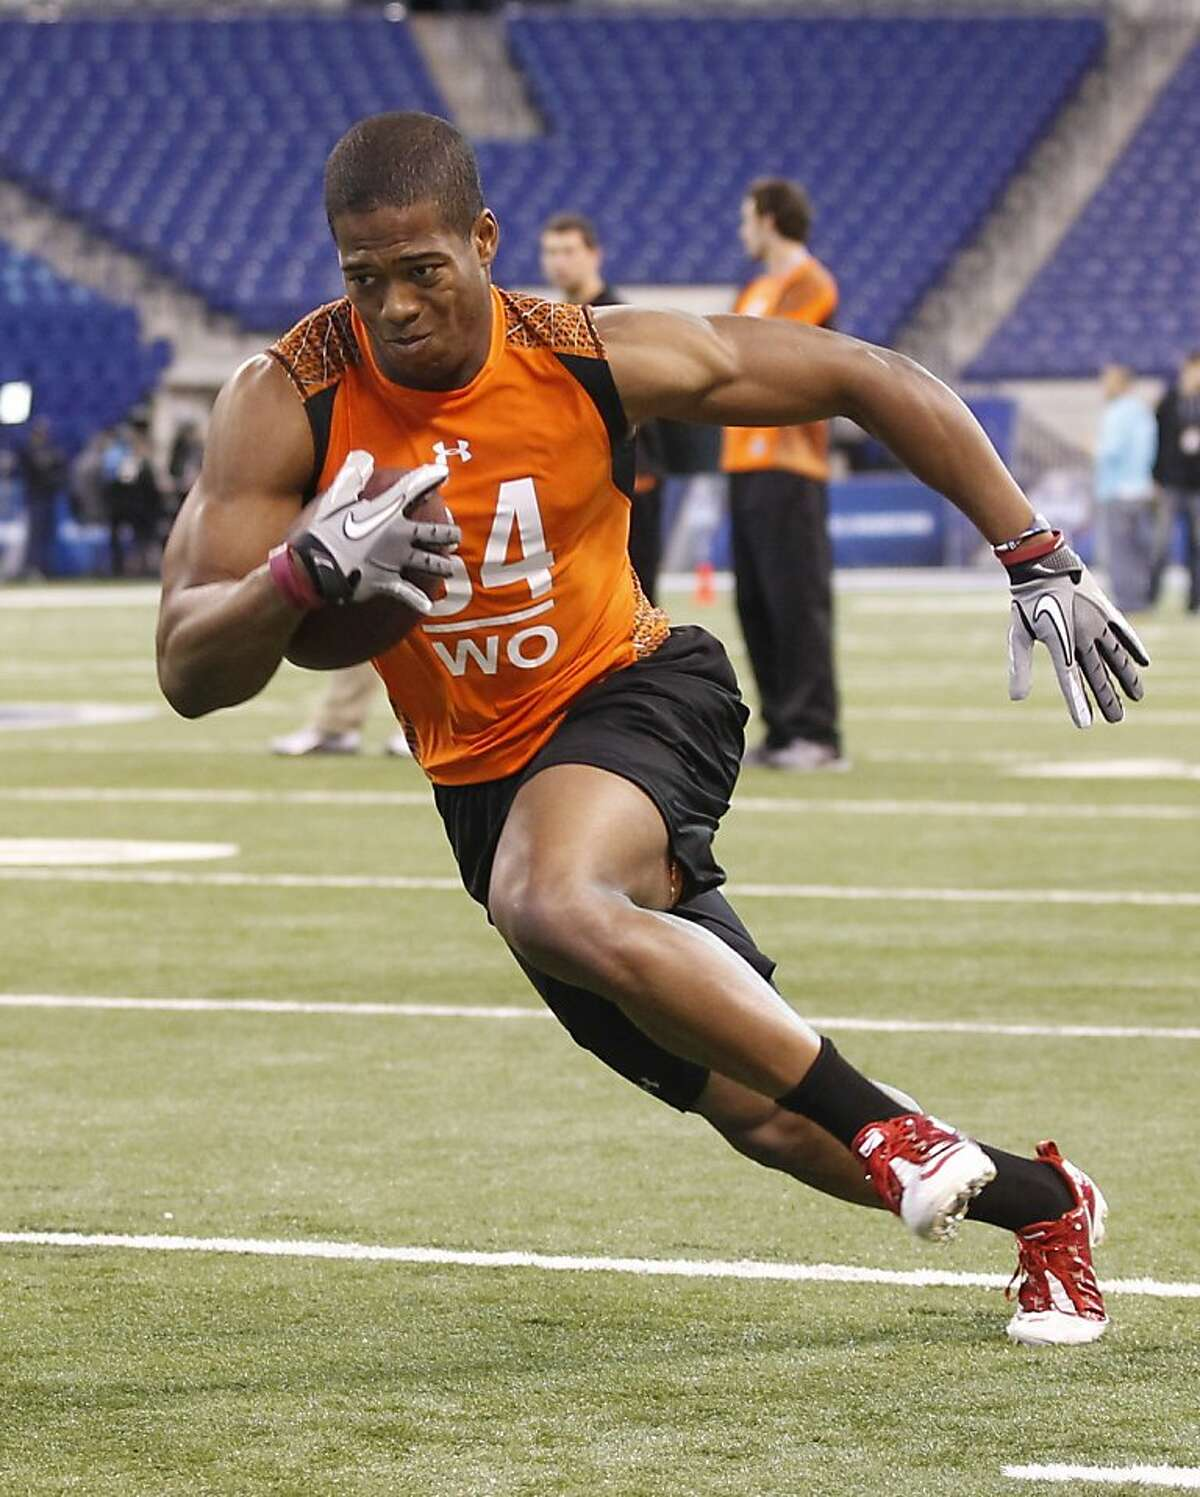 Stanford receiver Chris Owusu runs a drill at the NFL football scouting combine in Indianapolis on Sunday, Feb. 26, 2012. (AP Photo/Dave Martin)